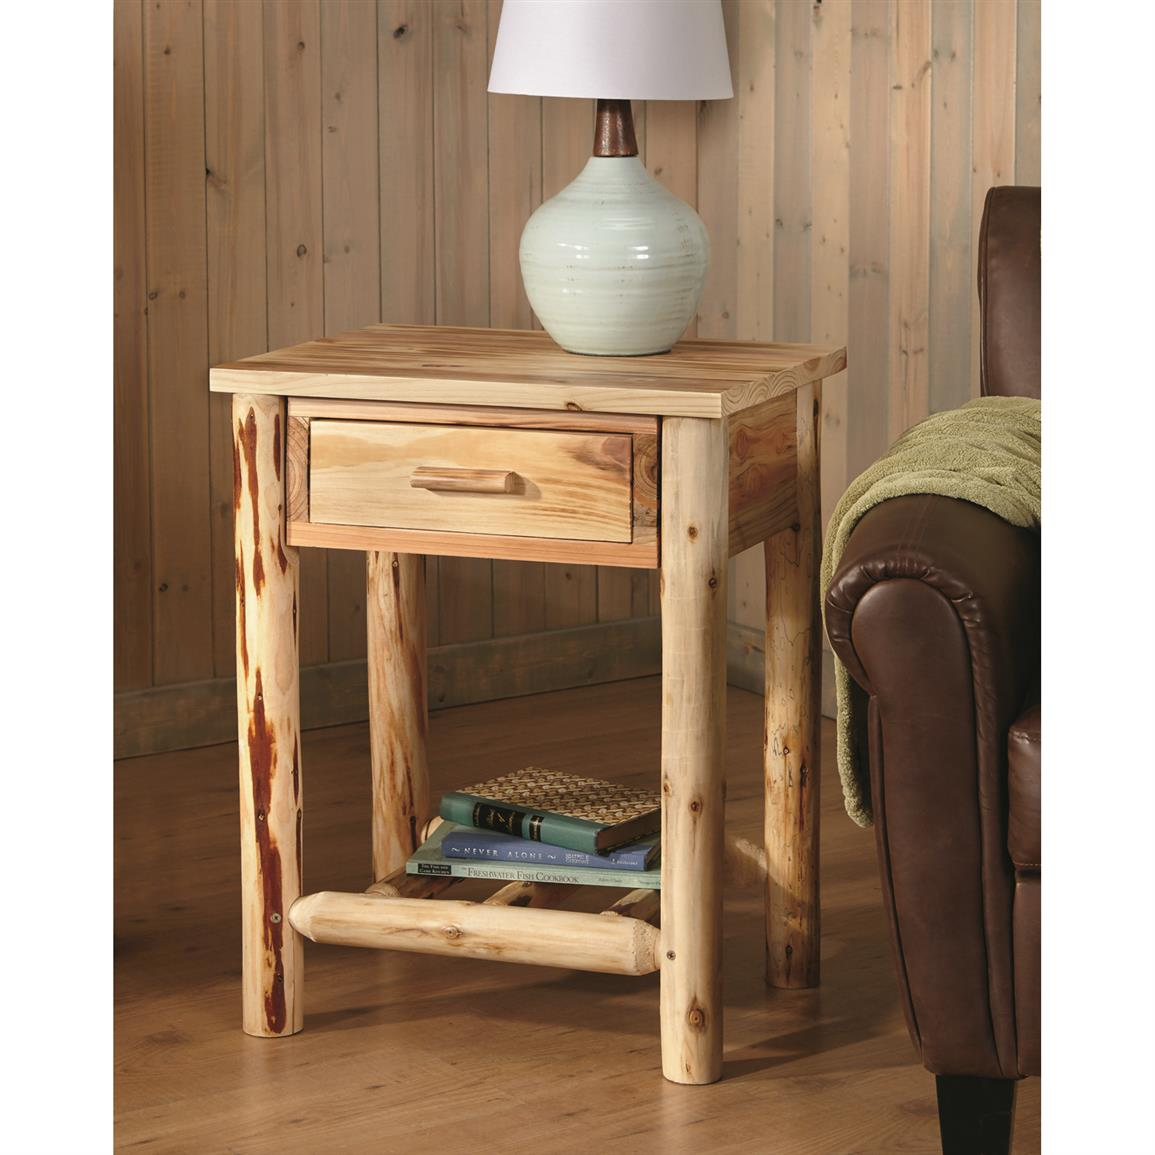 The perfect accent for rustic, Northwoods decor